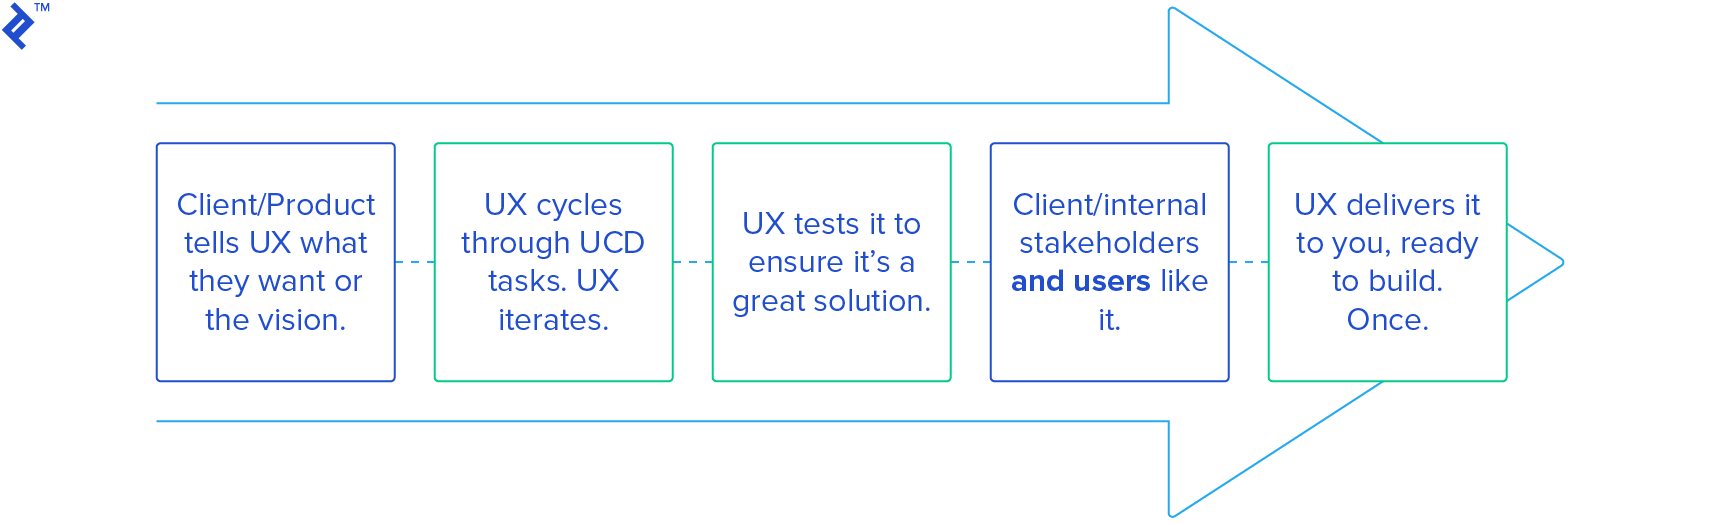 Software design and development process with UX involved.